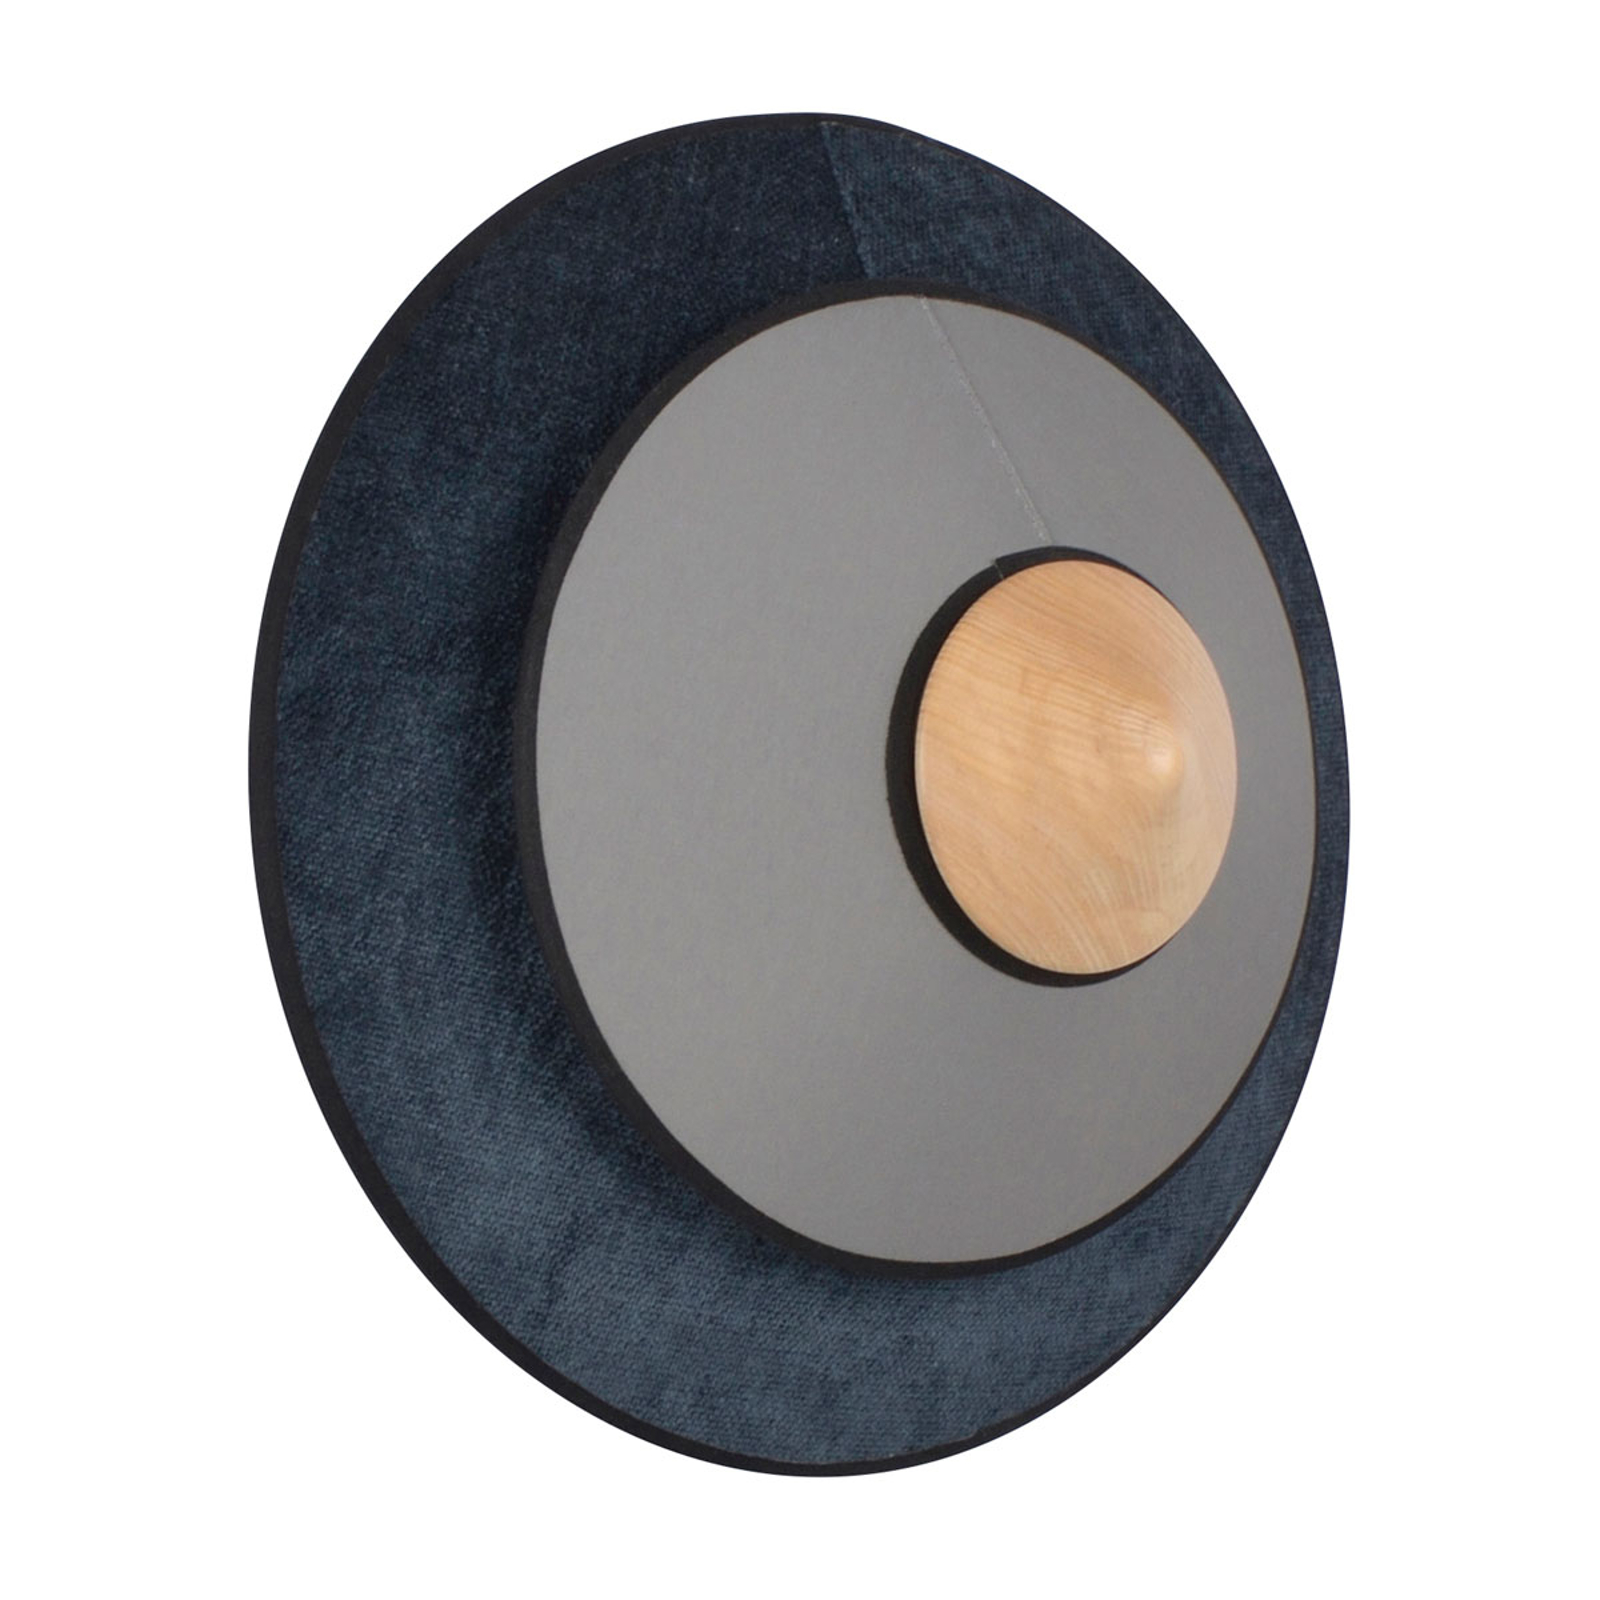 Forestier Cymbal S lámpara de pared LED medianoche